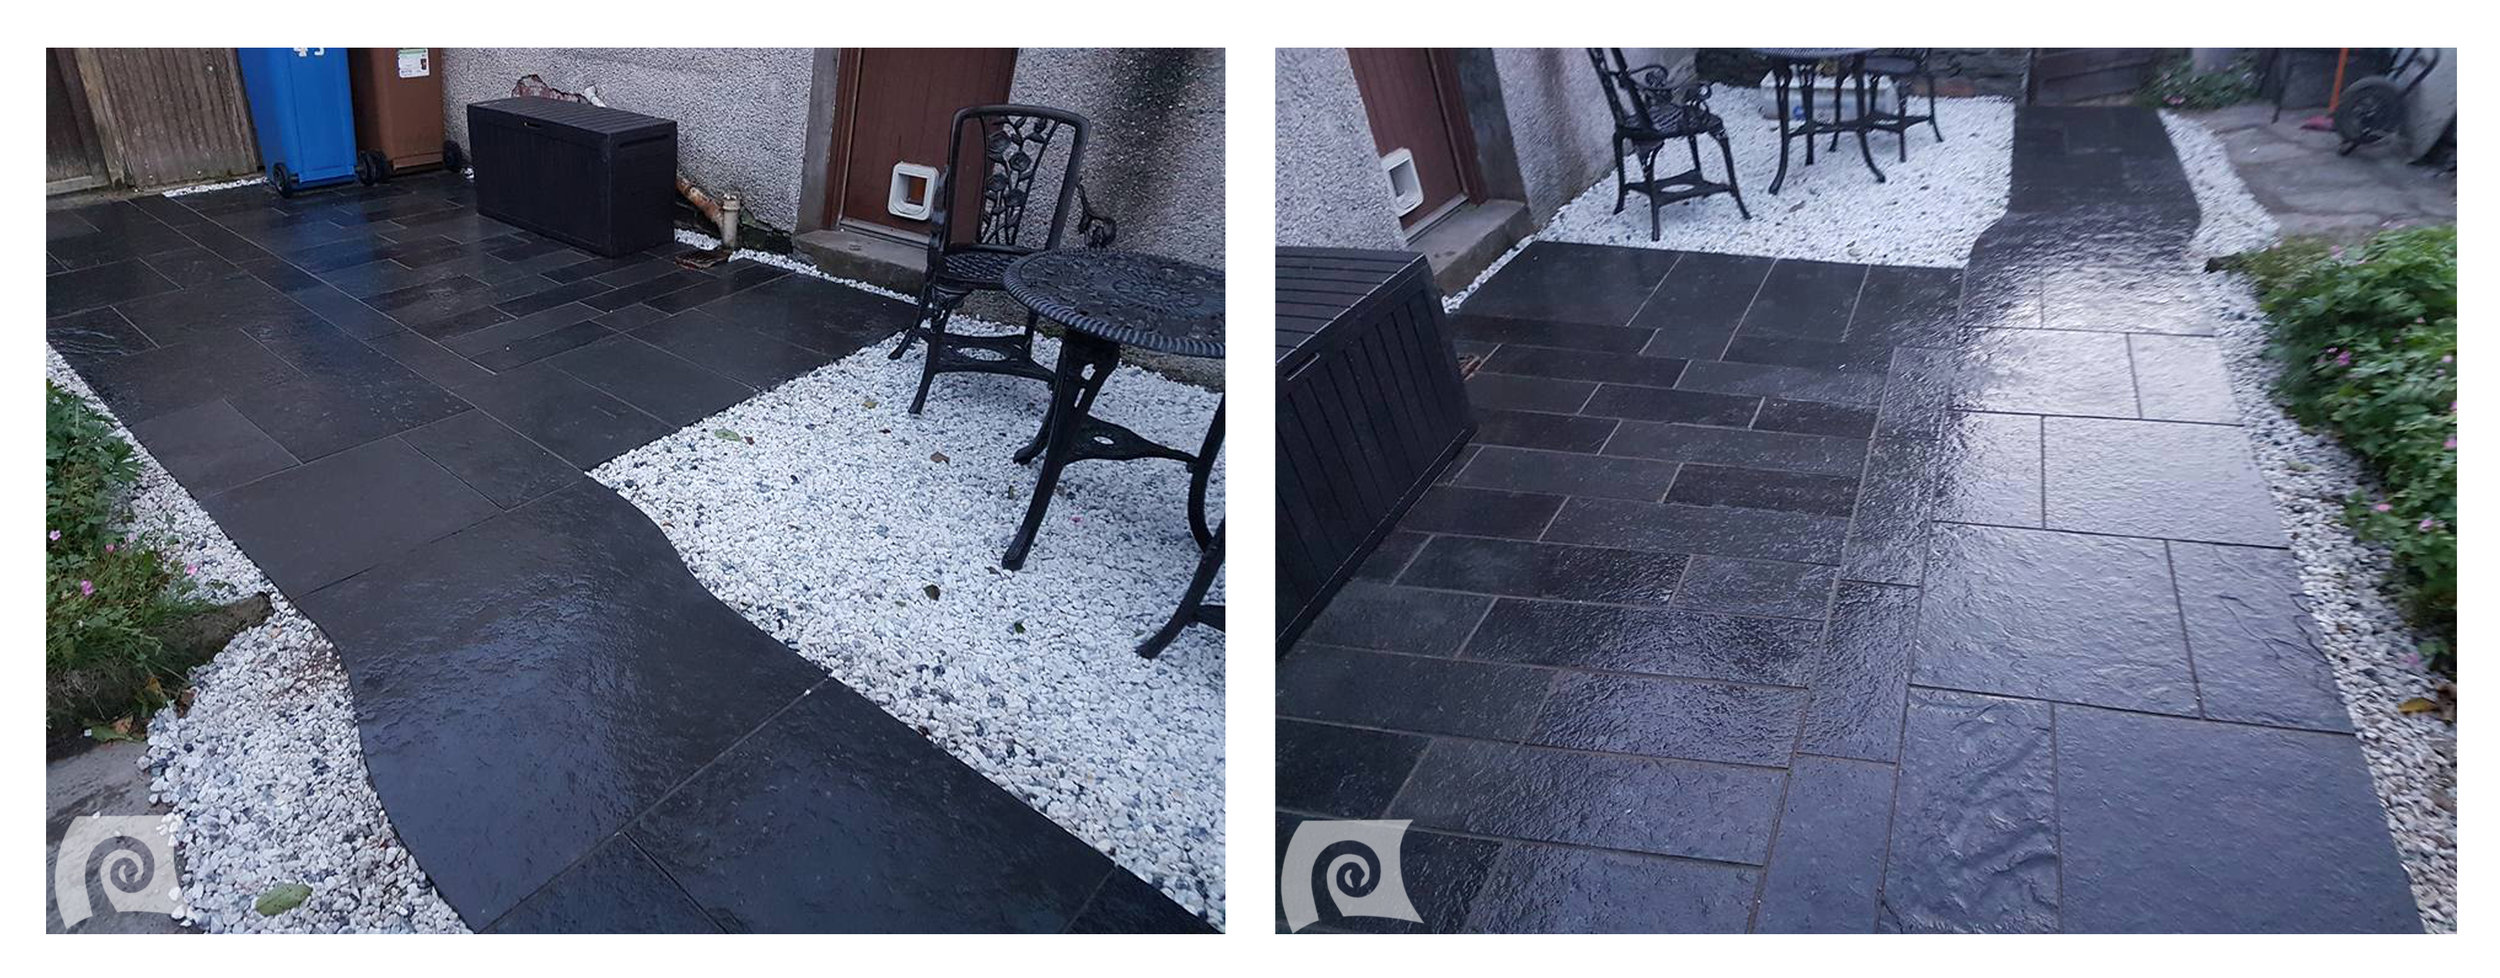 (Say who's an ugly patio? Not I! Not I!)